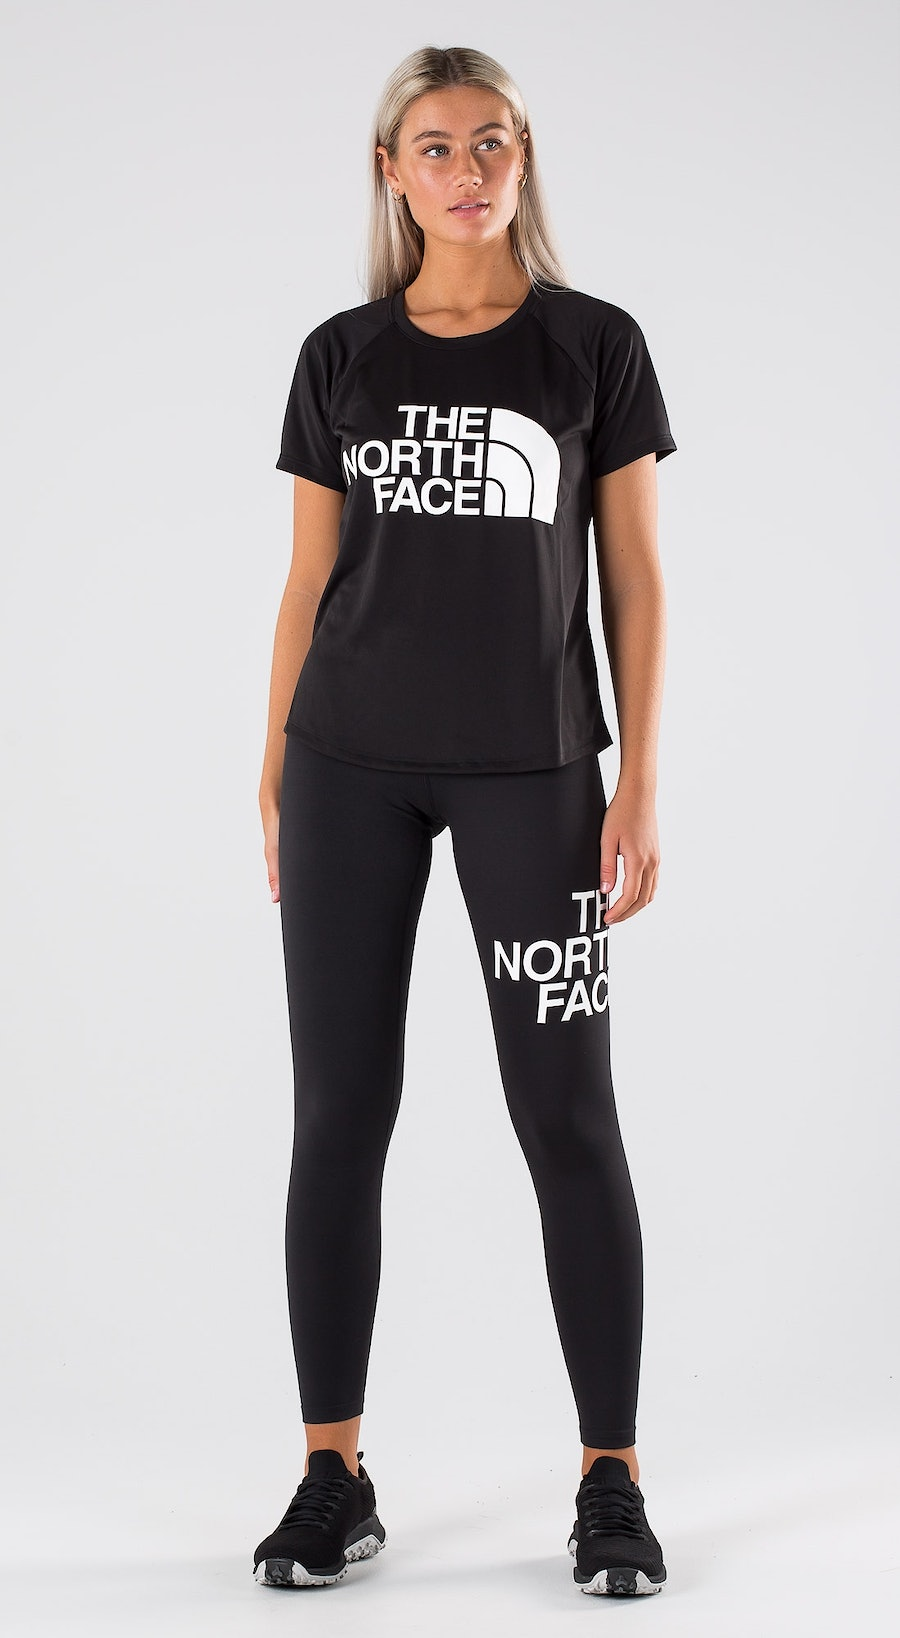 The North Face Grap Play Hard T-shirt Outfit Multi